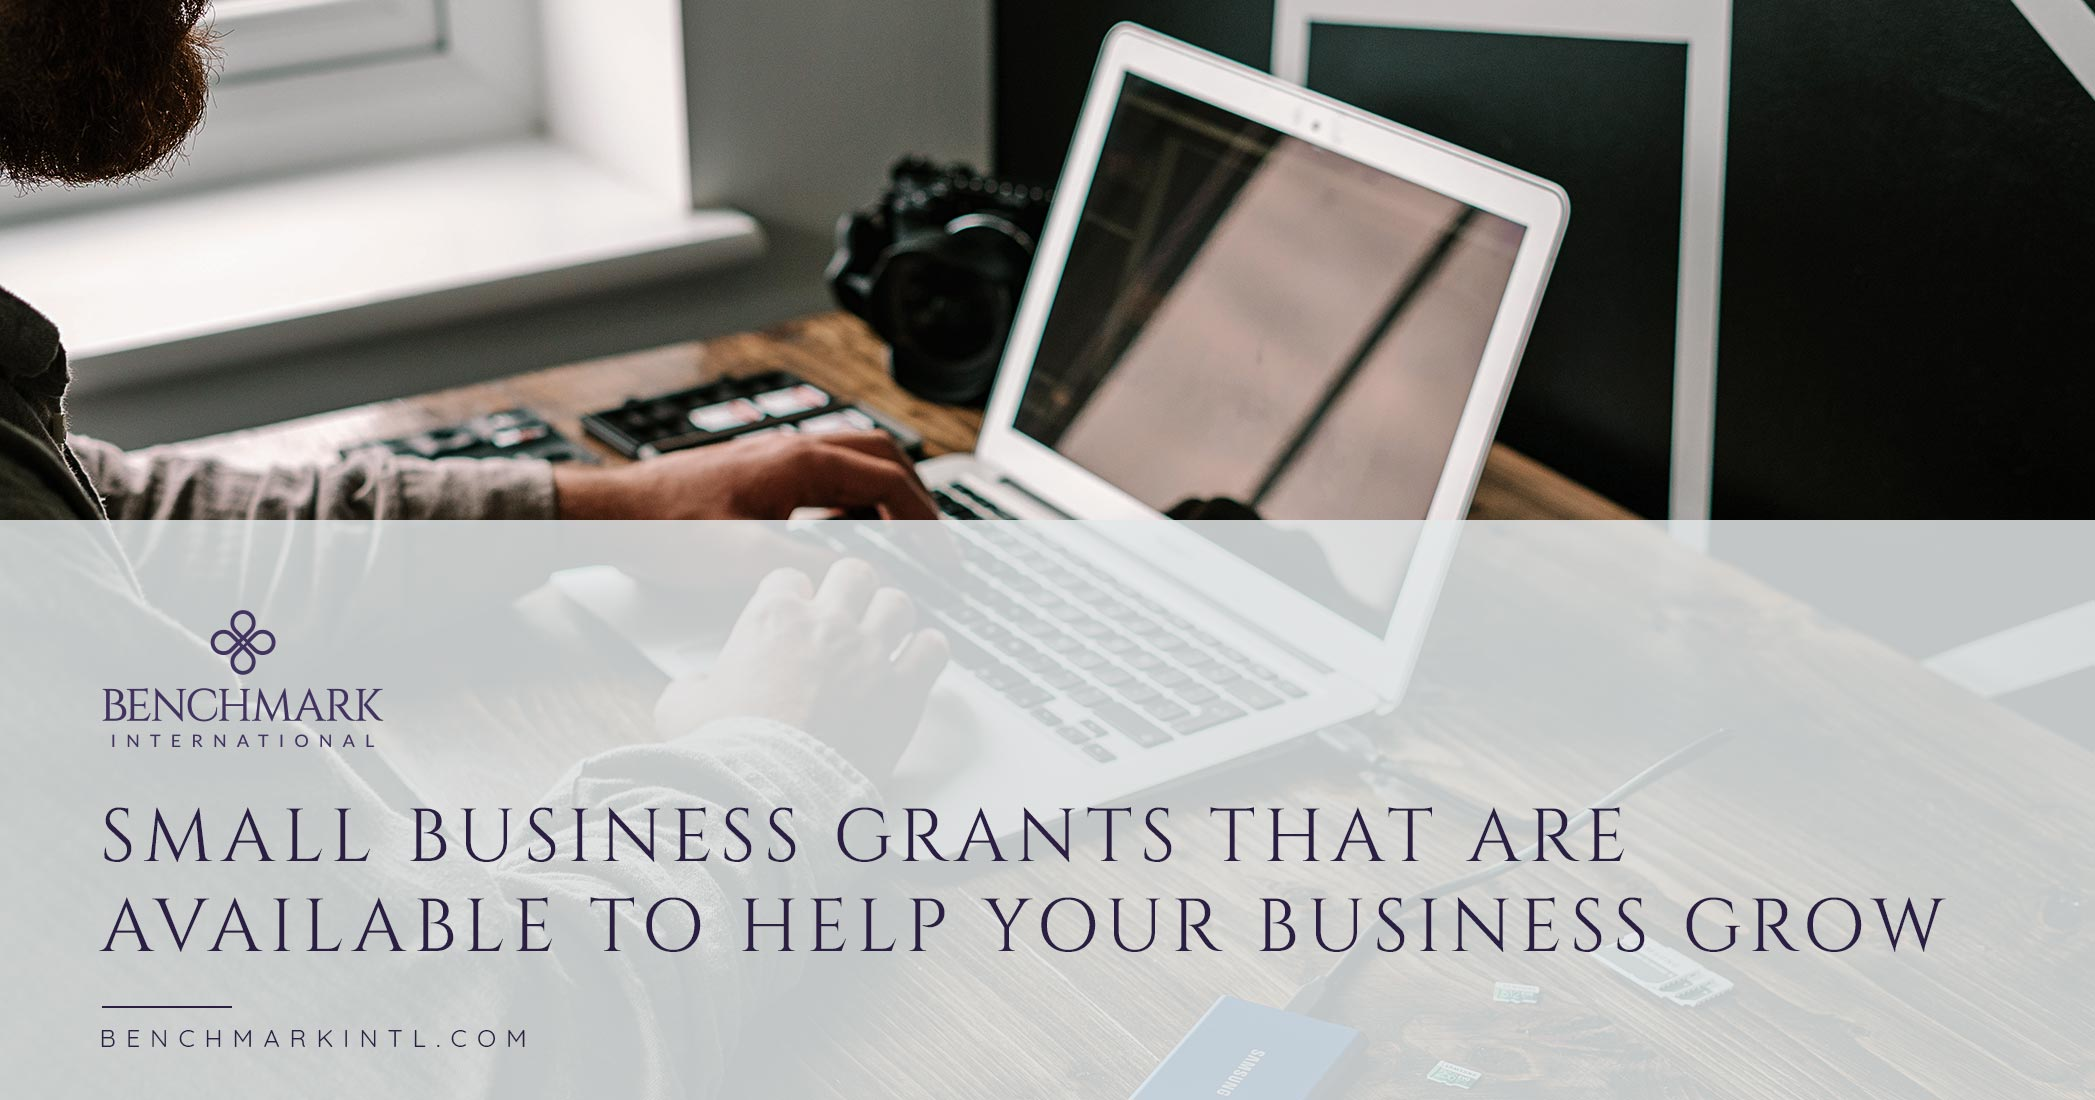 Small Business Grants That Are Available to Help Your Business Grow